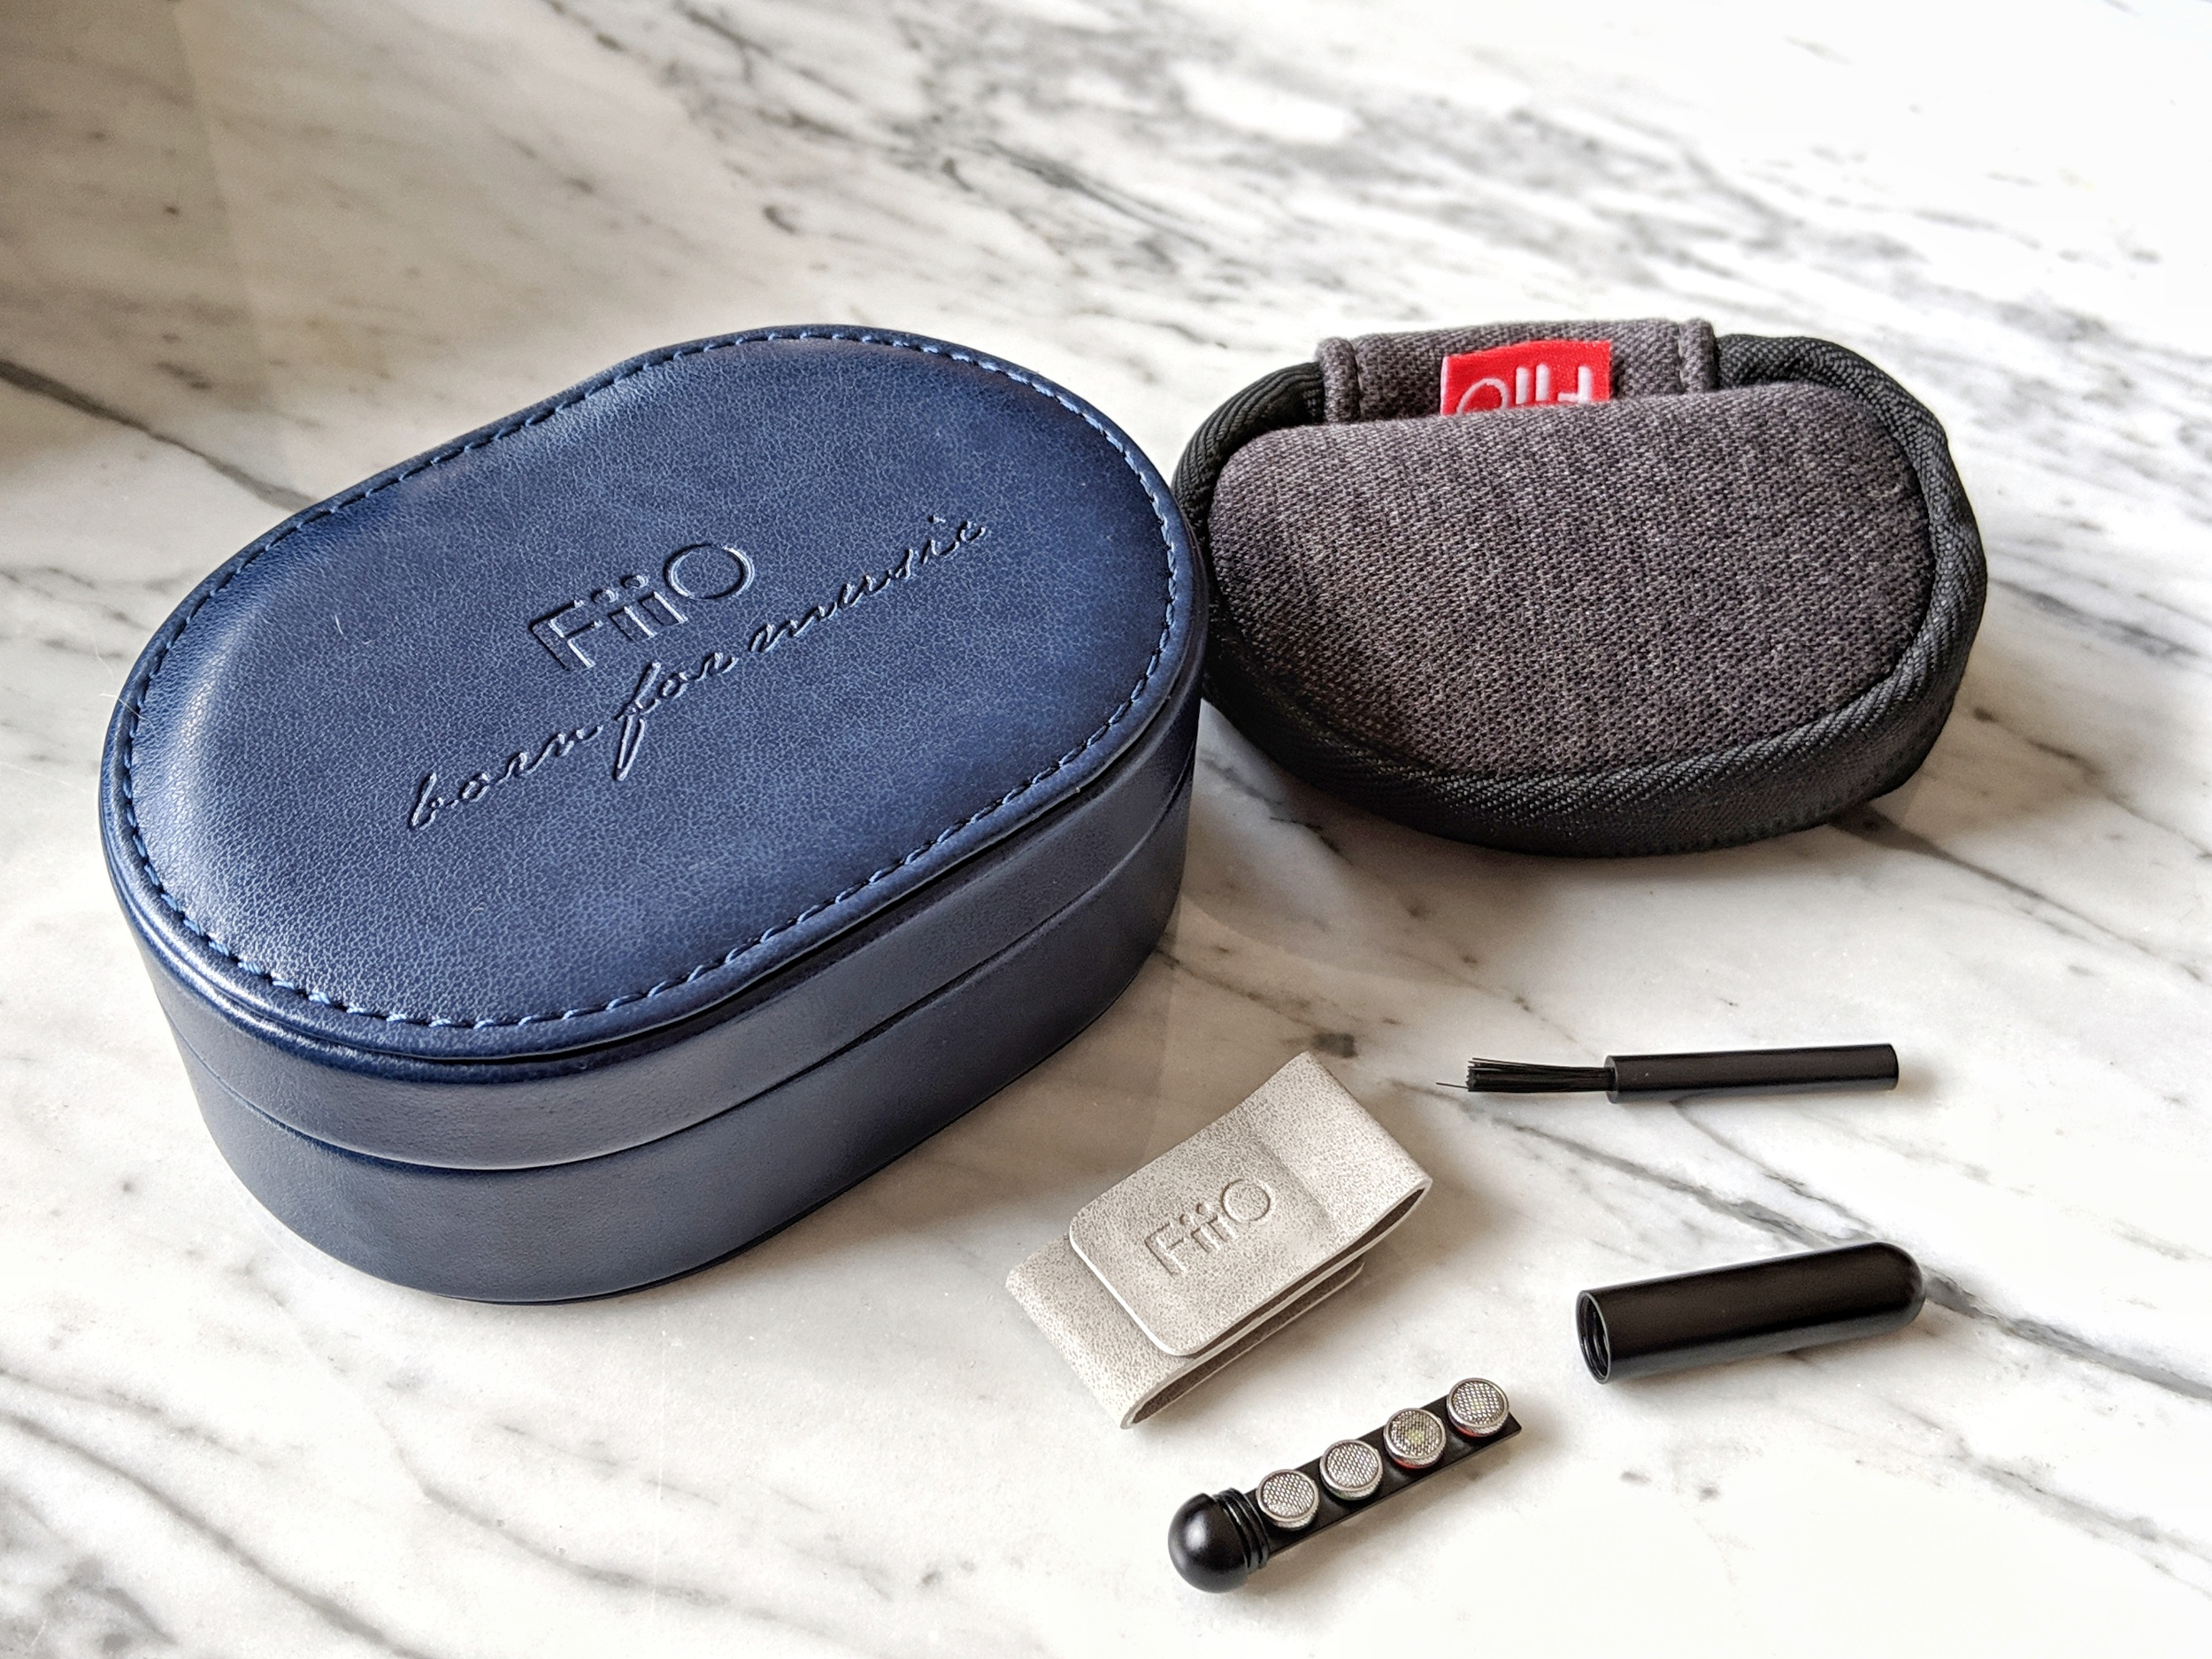 Fiio FH7 accessories including 2 cases, a cleaning tool, spare sound filers and a cable tidy.